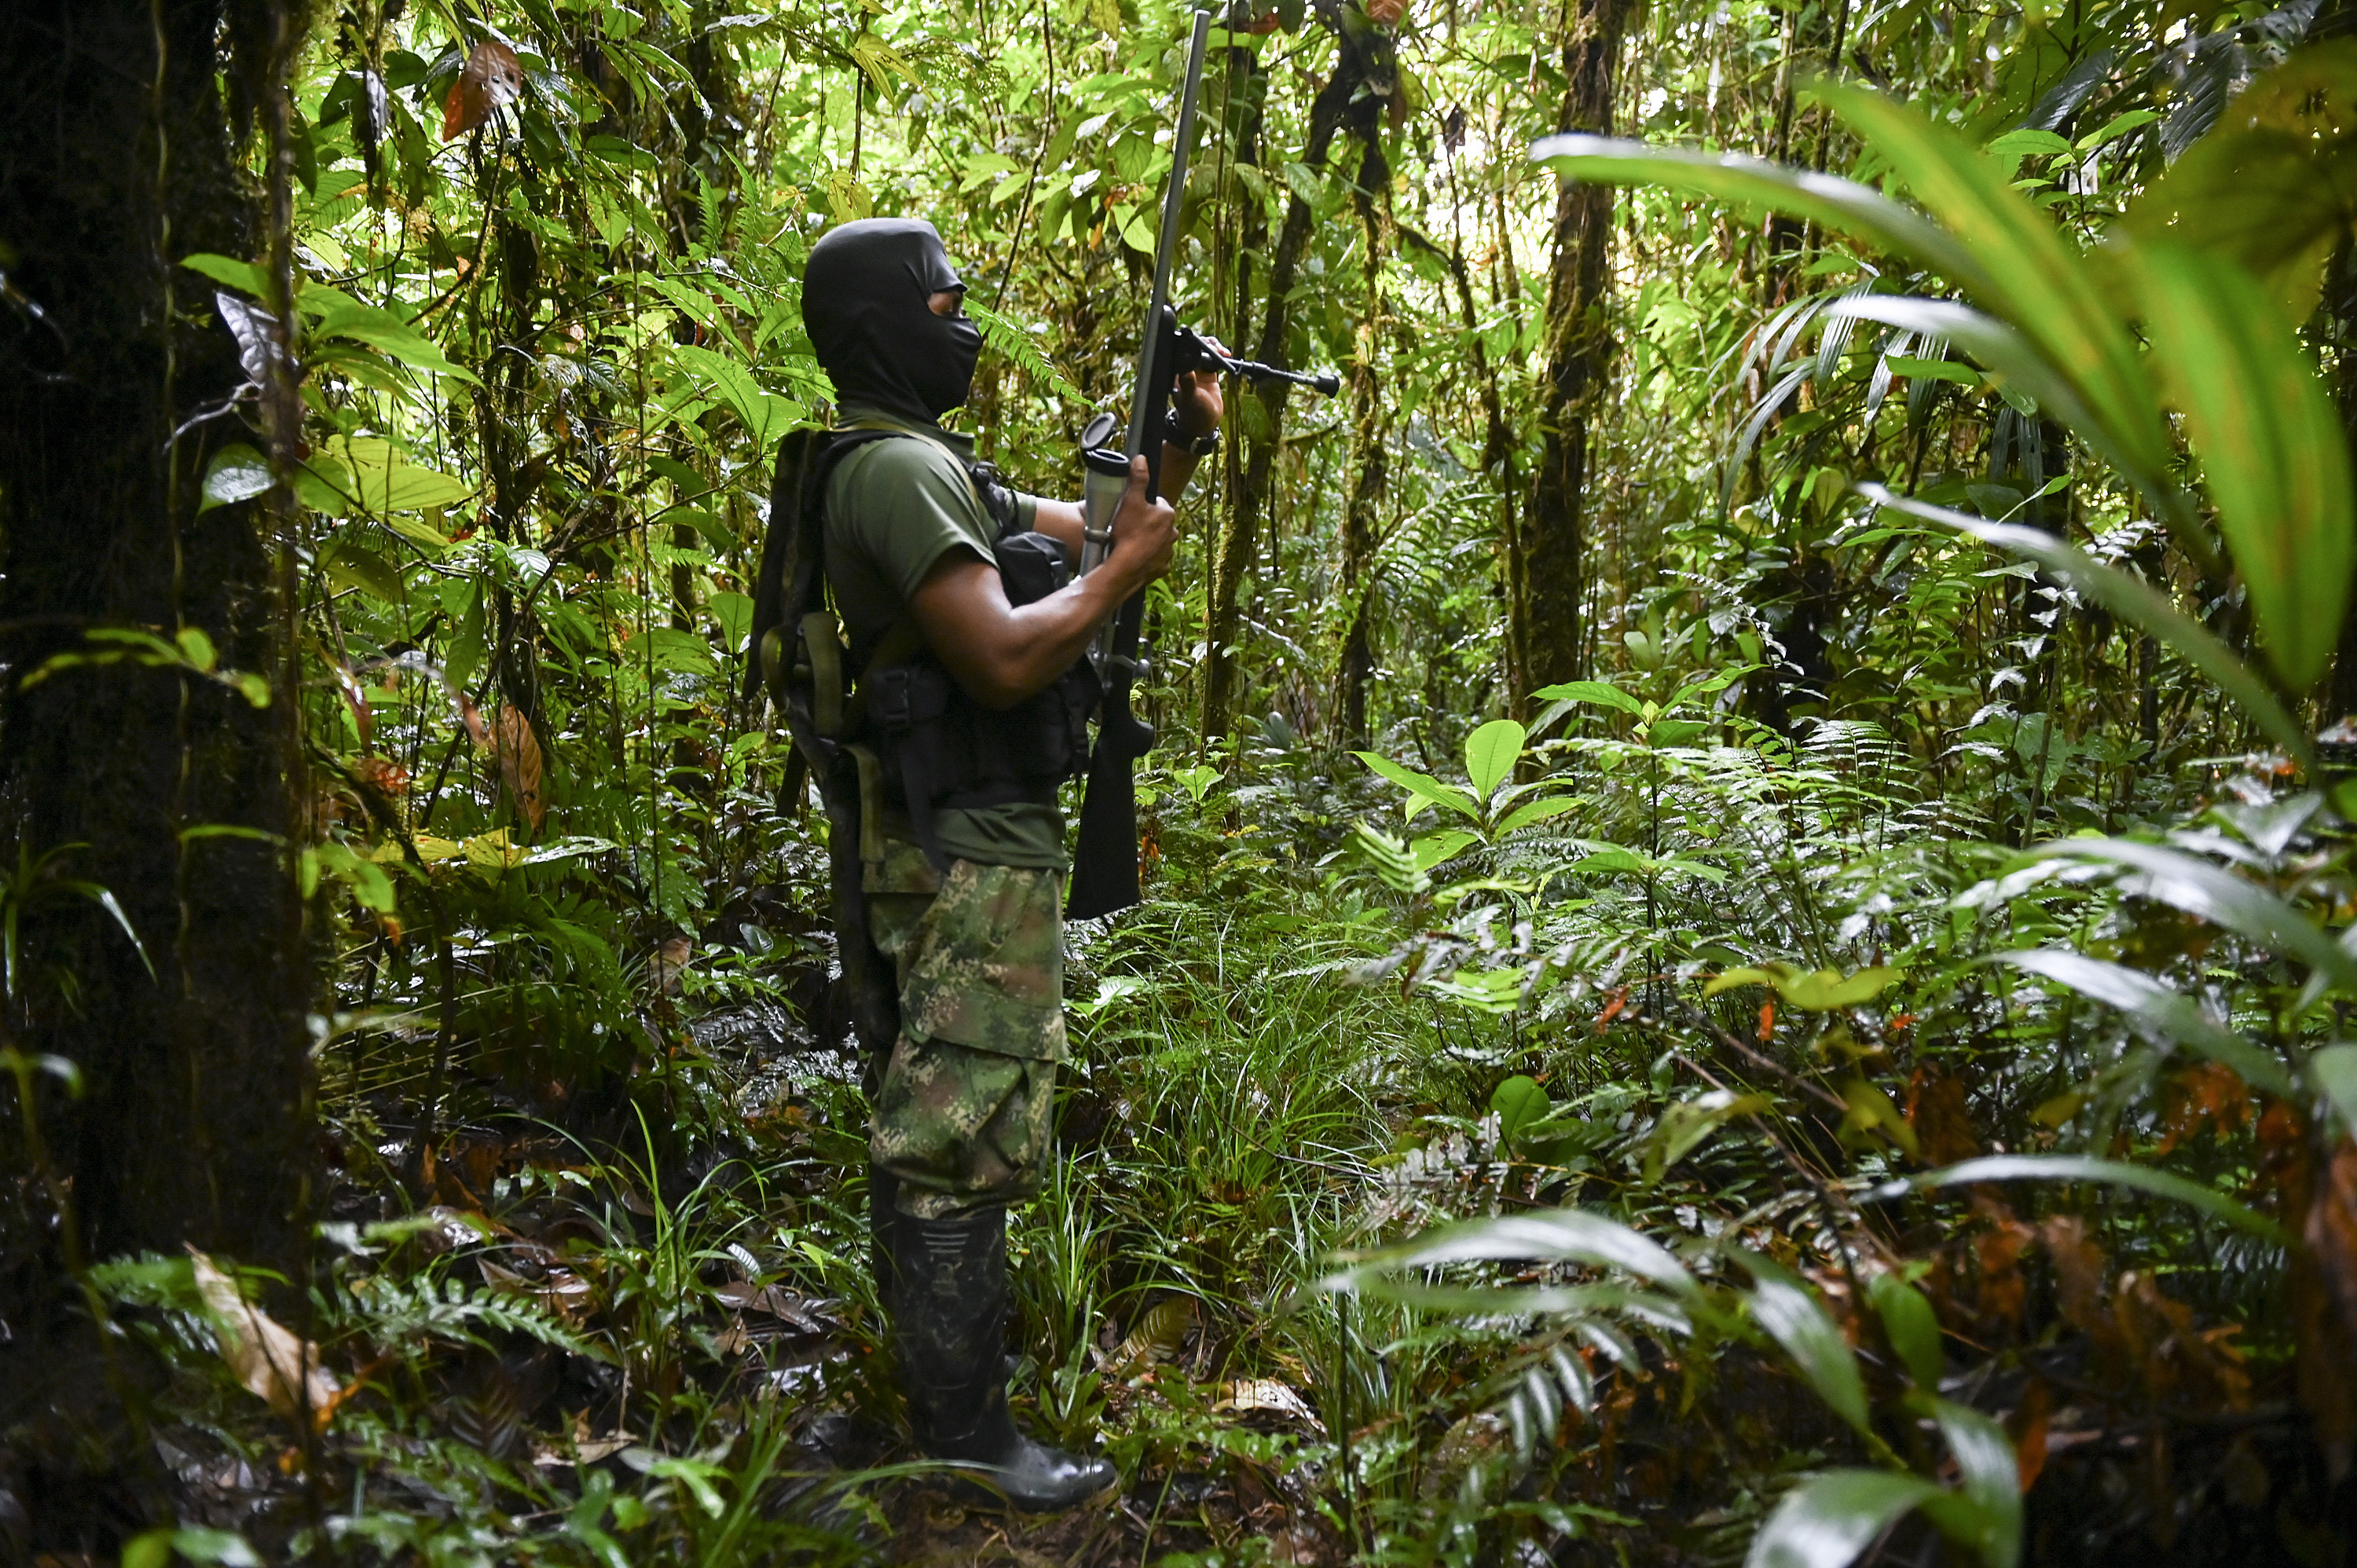 Members of the National Liberation Army (ELN) during training in the jungle